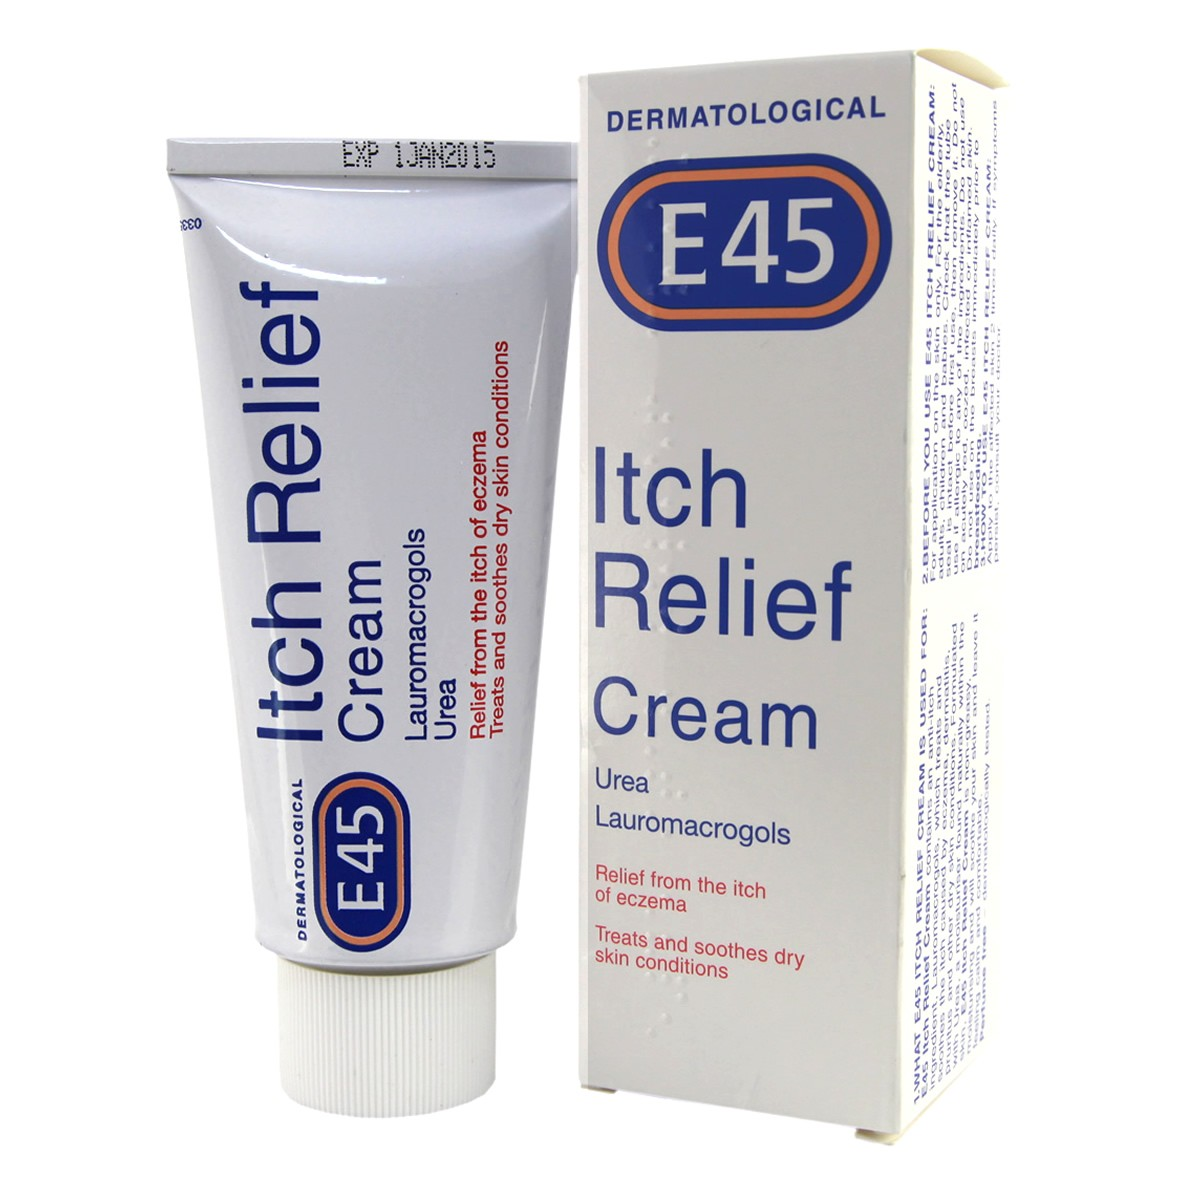 E45 Itch Relief Cream